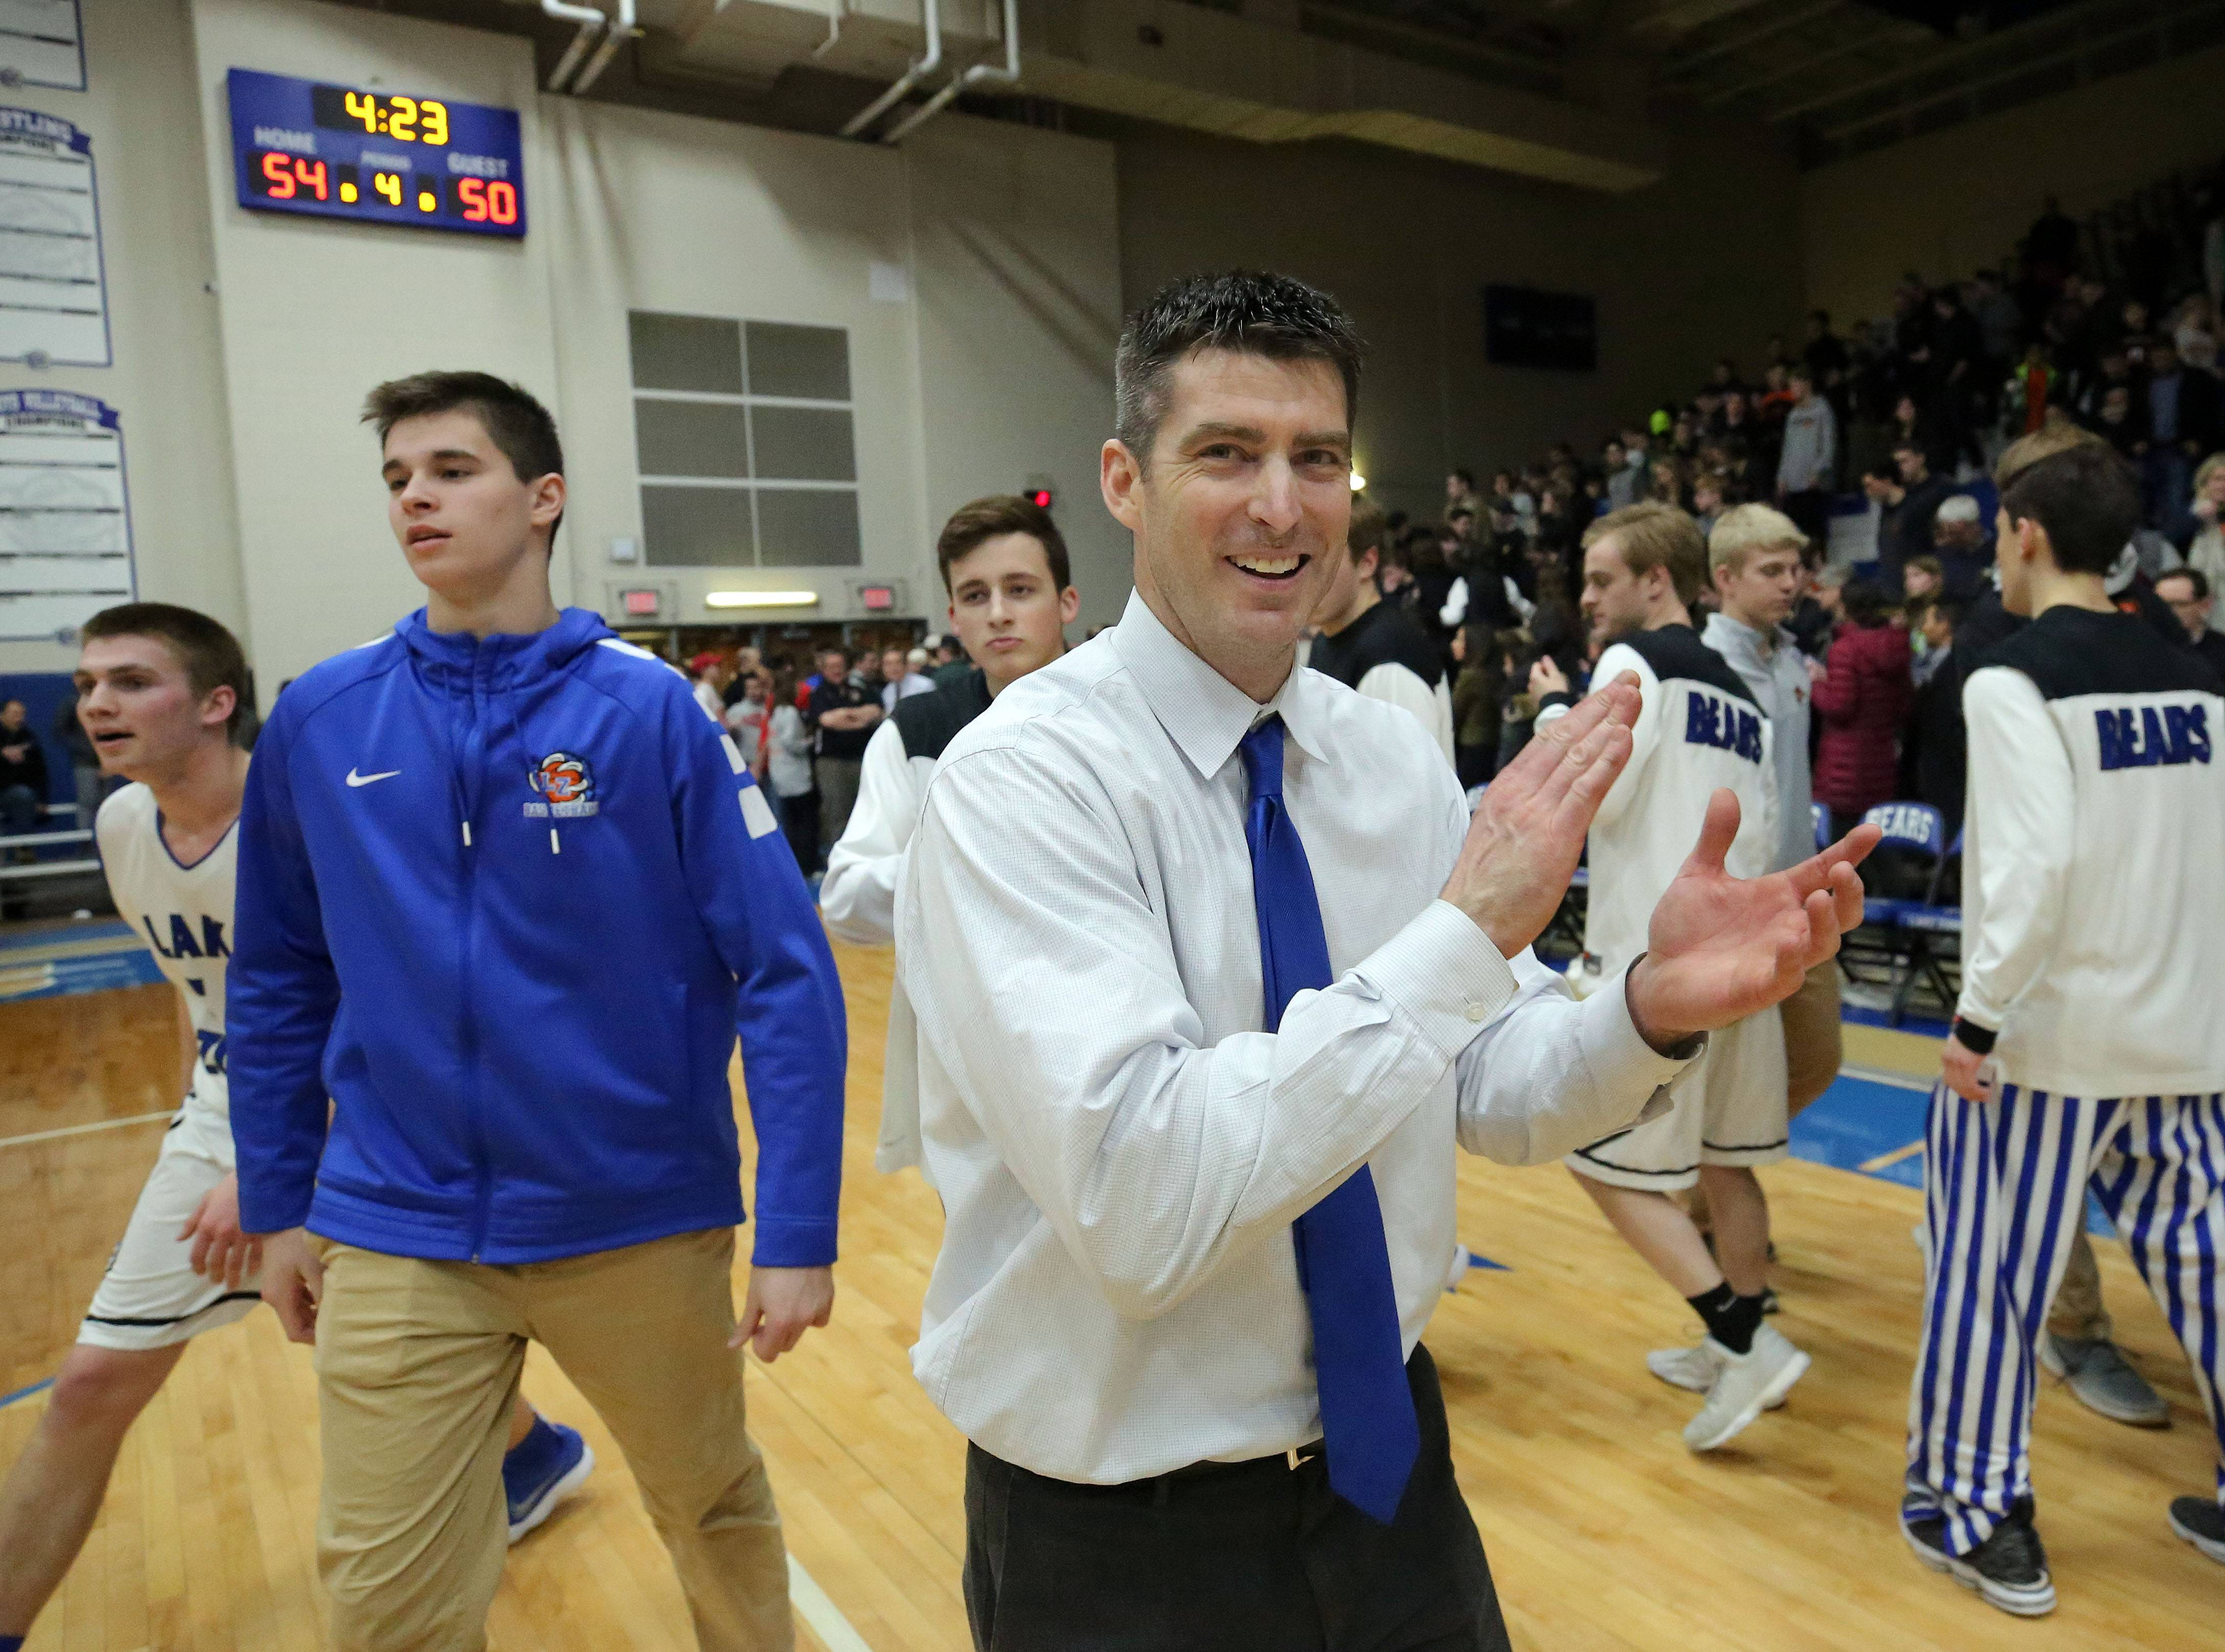 Lake Zurich head coach Billy Pitcher celebrates after the Bears' 54-50 win over Libertyville in the Class 4A sectional semifinal at Lake Zurich.